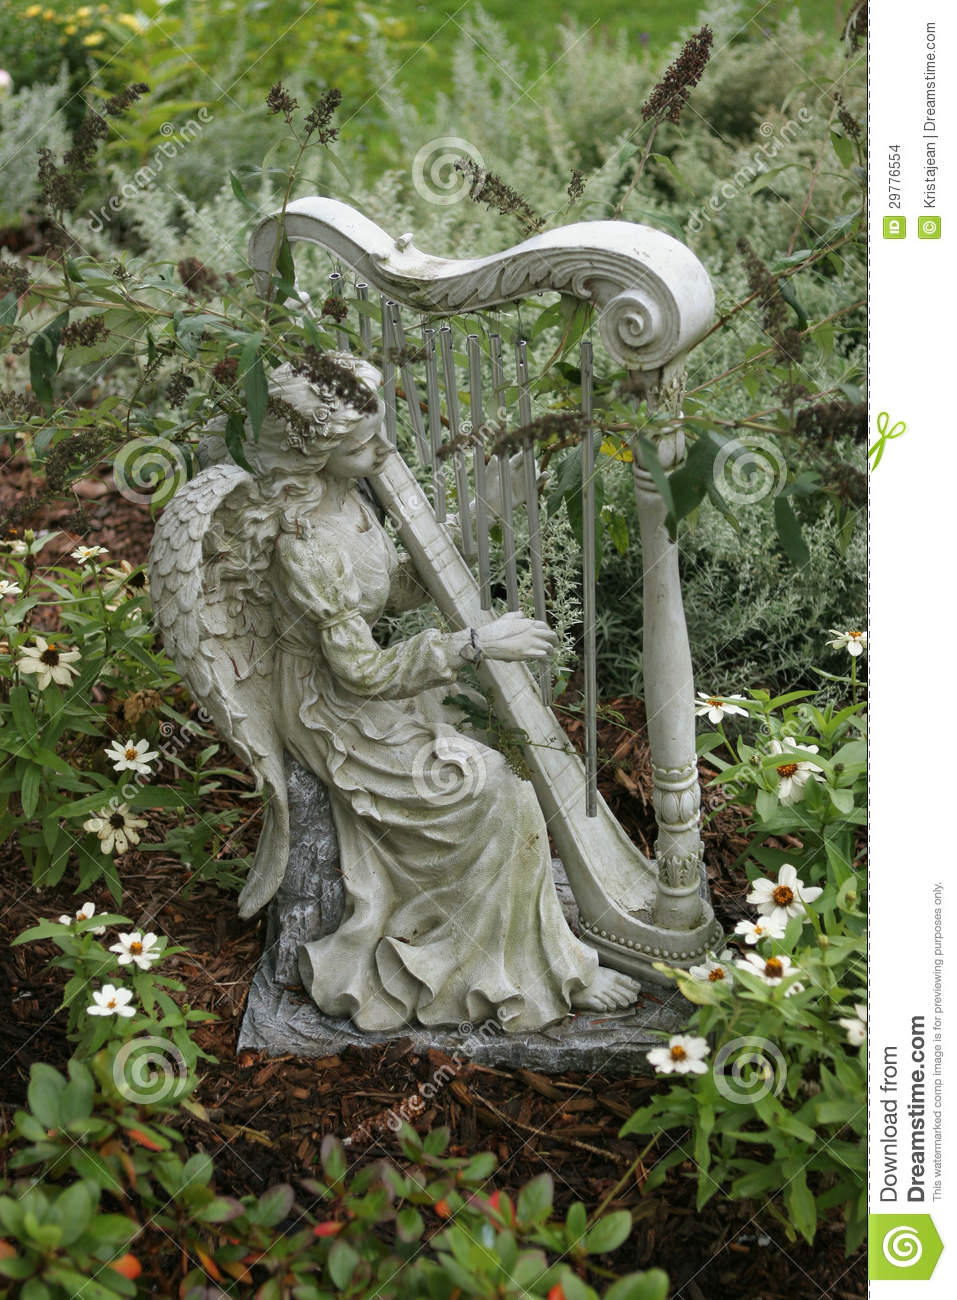 statue de jardin d 39 un ange jouant une harpe images stock image 29776554. Black Bedroom Furniture Sets. Home Design Ideas